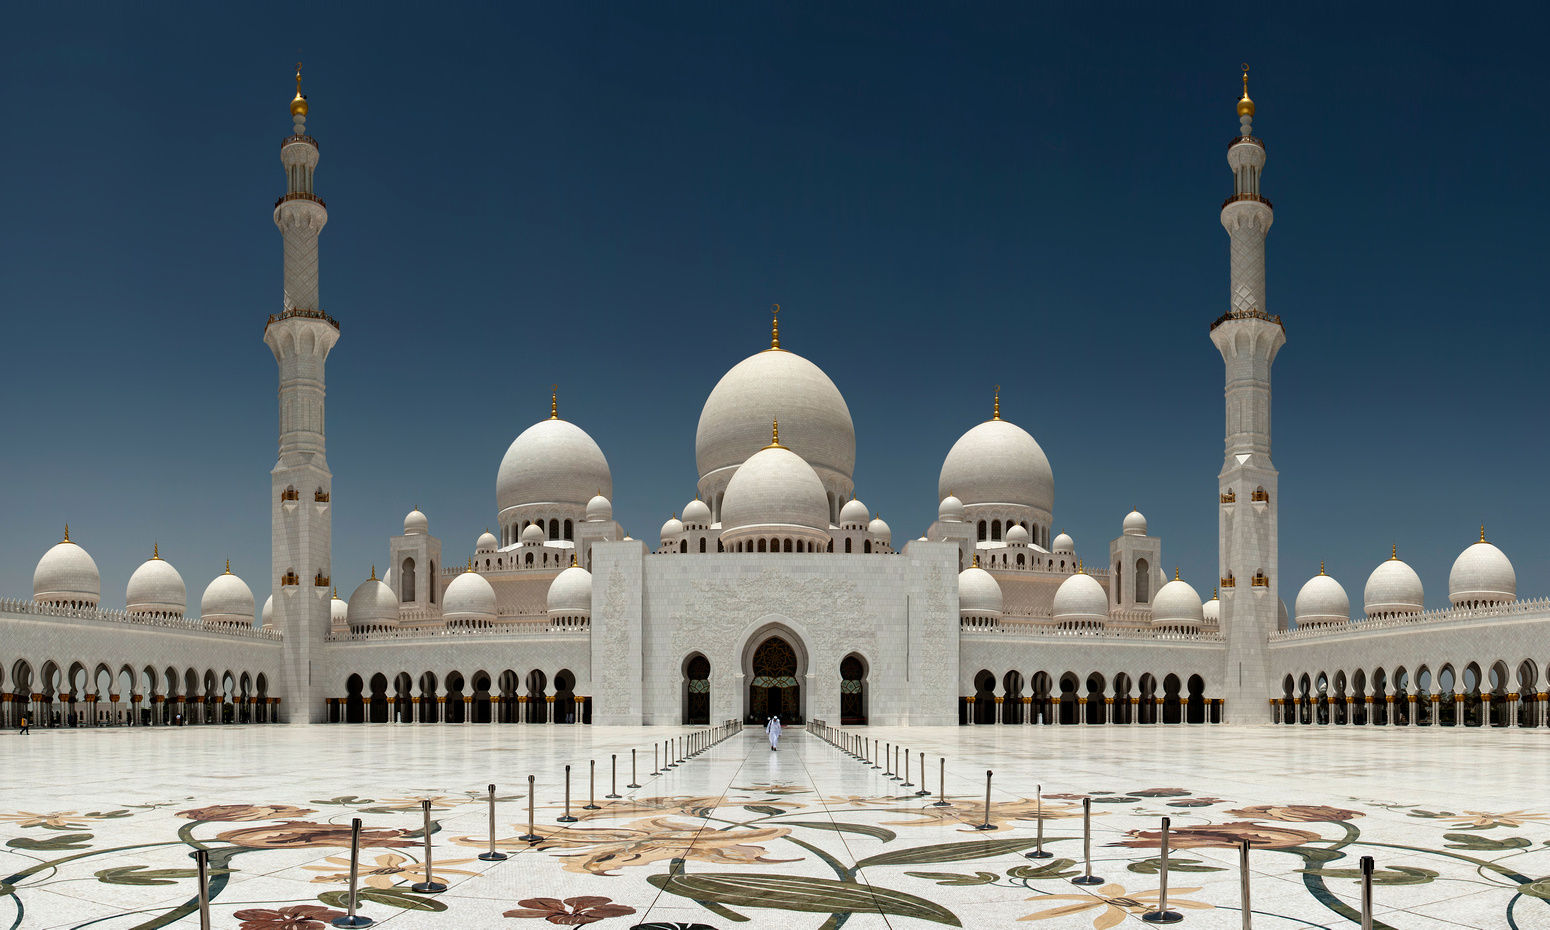 Sheikh Zayed Grand Mosque entrance courtyard frontal perfect symetry